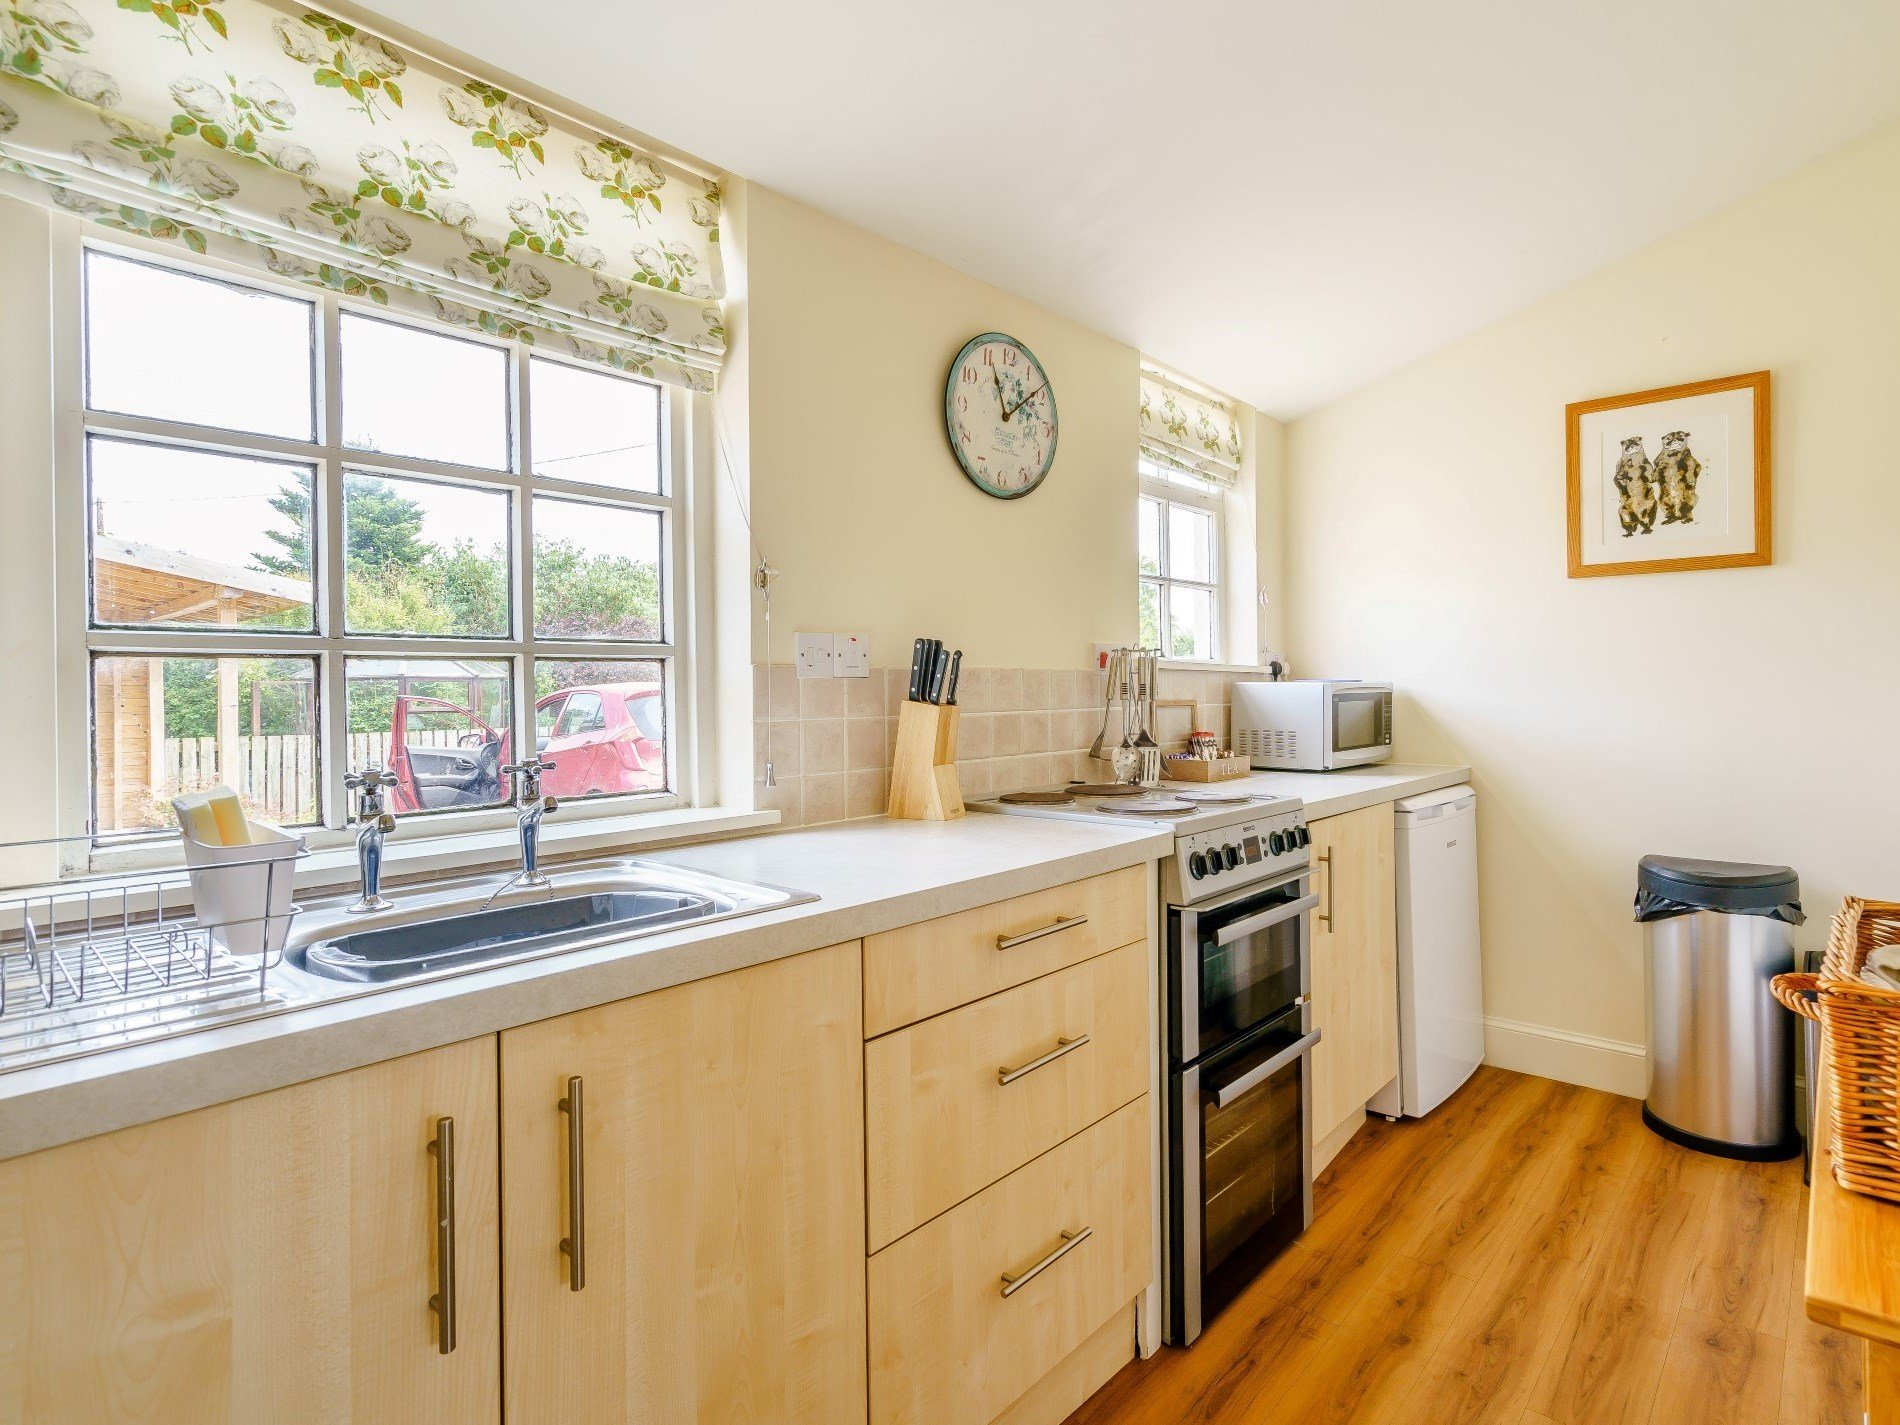 2 Bedroom Cottage in Northumberland, Northumbria